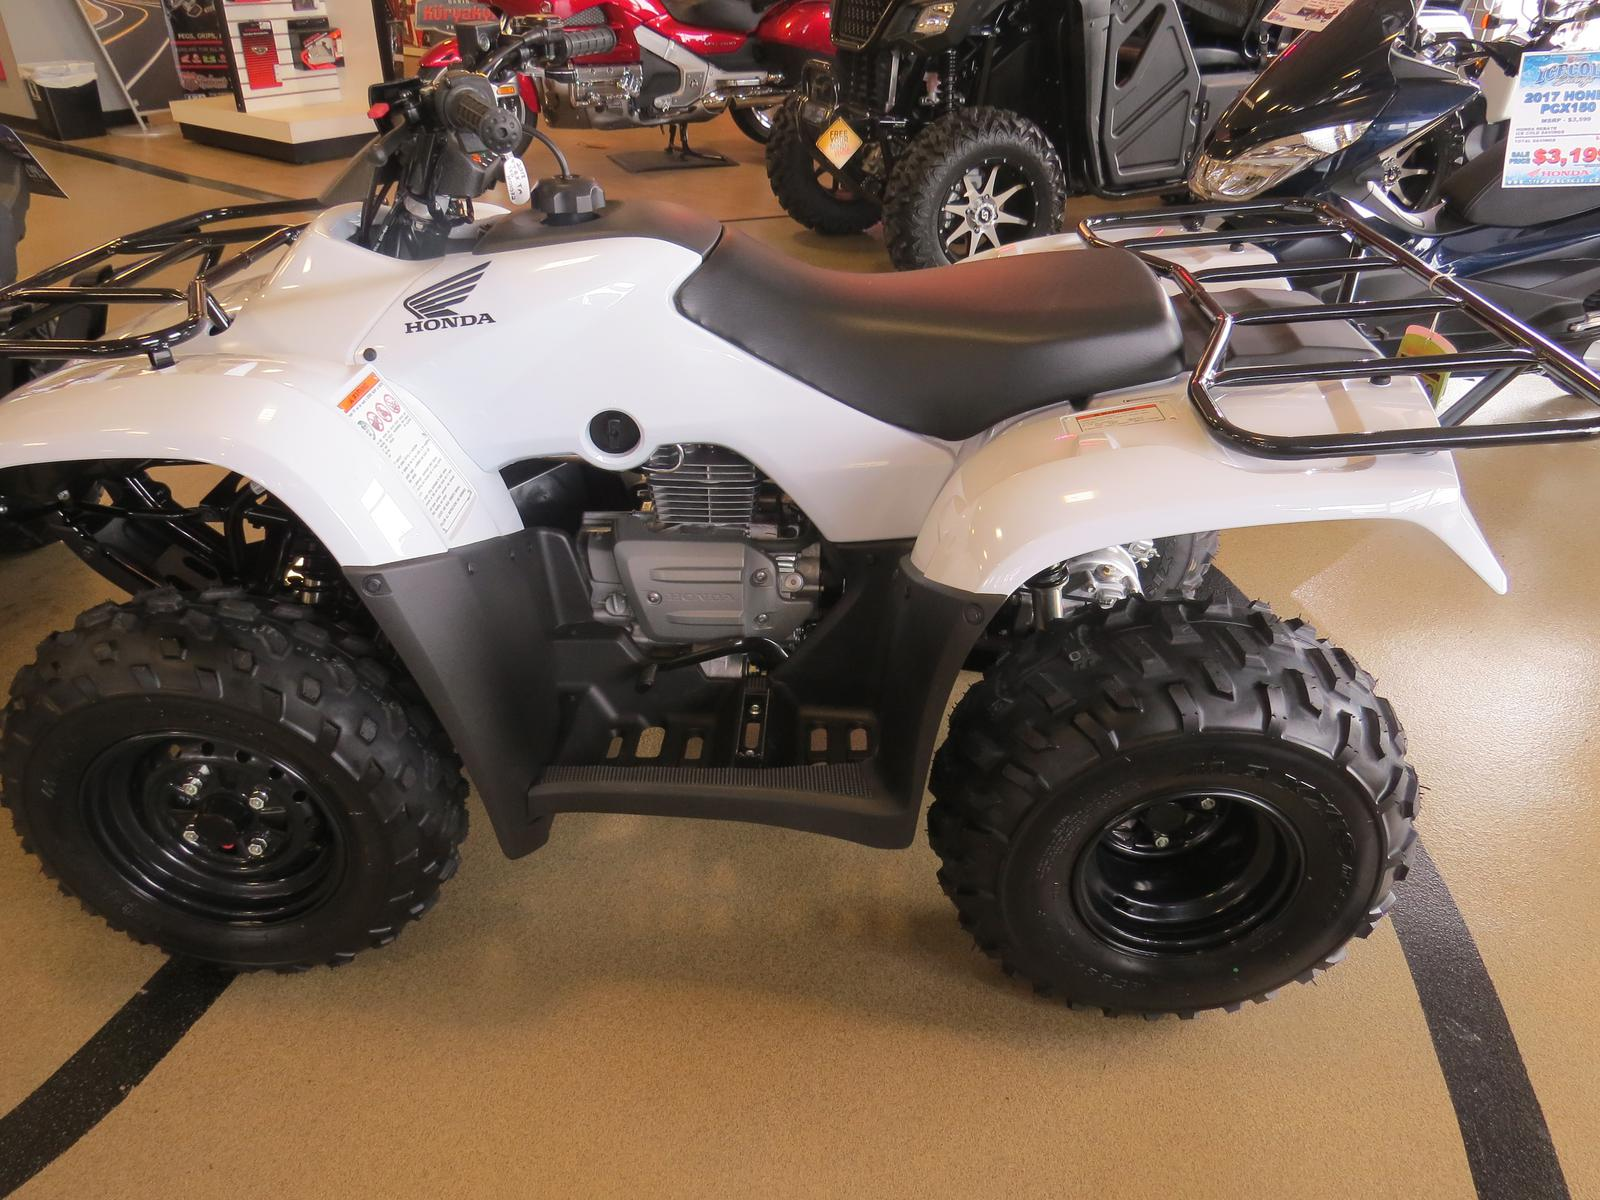 2018 Honda FOURTRAX RECON for sale in Litchfield, IL | Niehaus Cycle Sales  (217) 324-6565